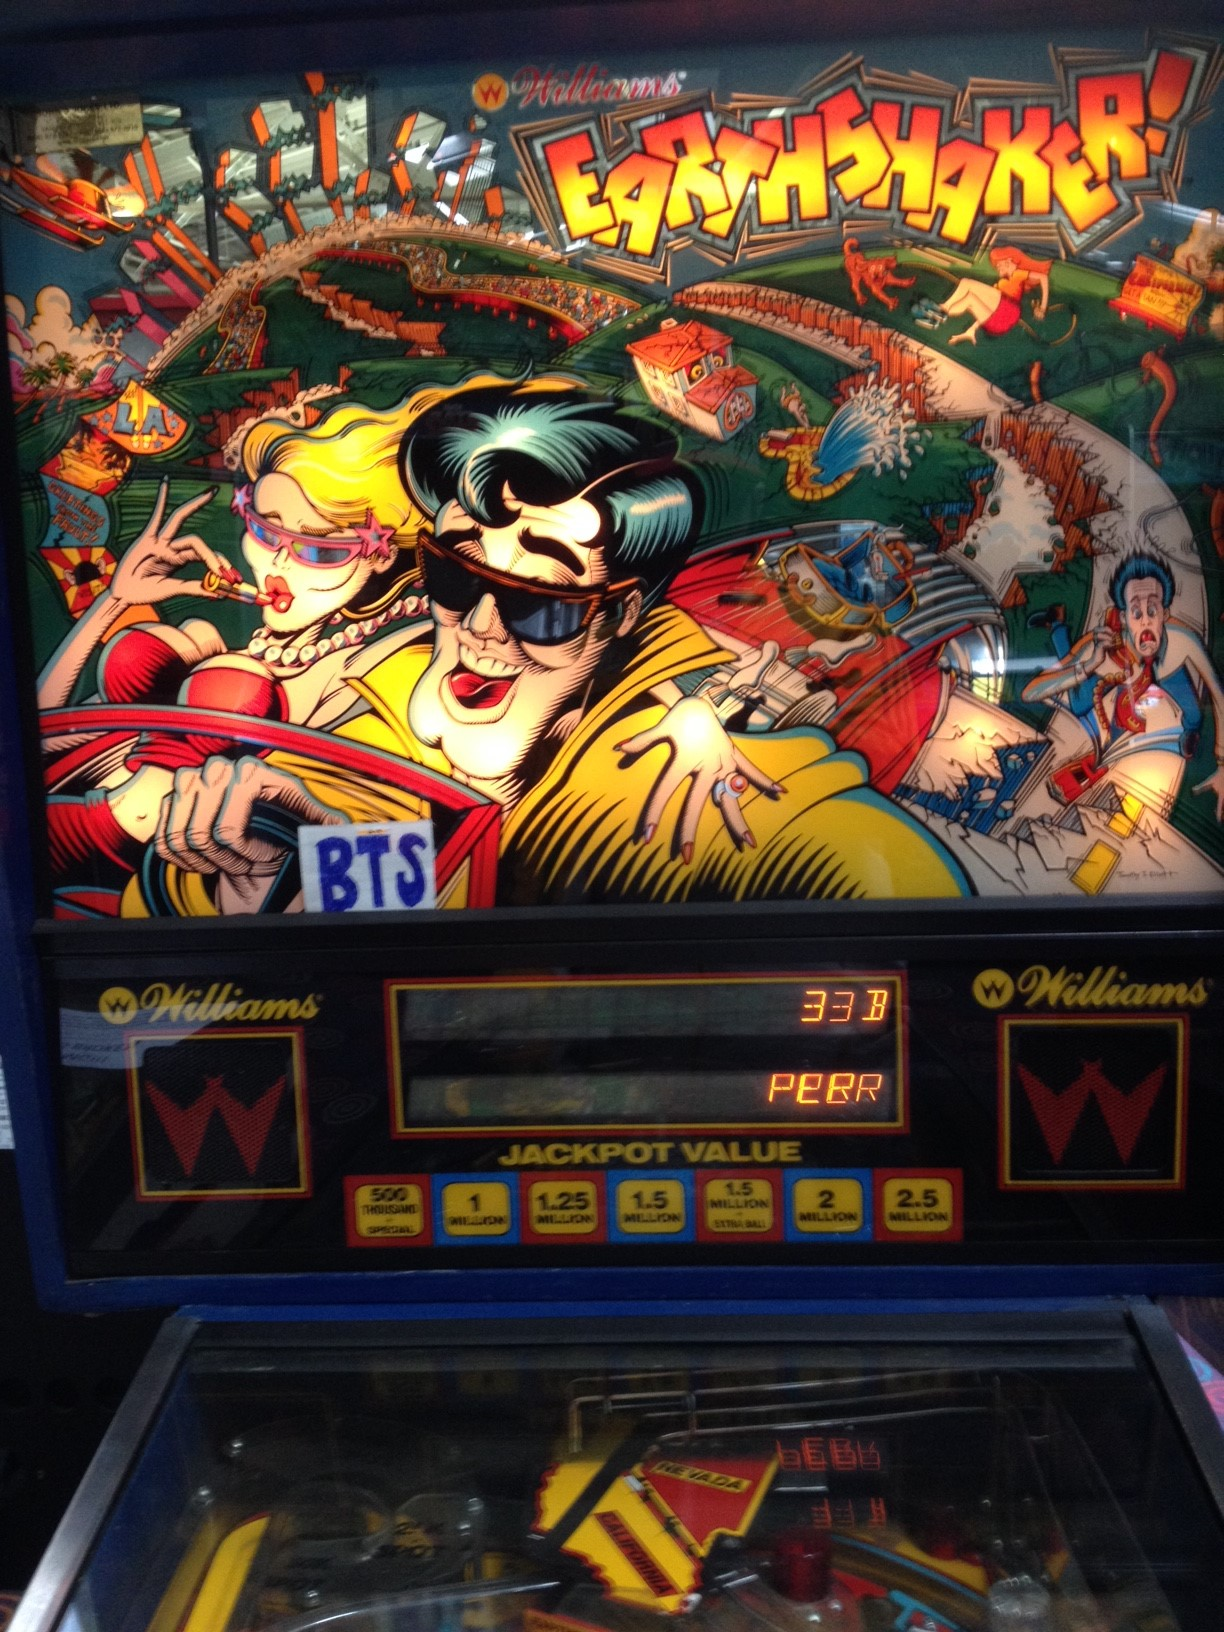 bensweeneyonbass: Earthshaker (Pinball: 3 Balls) 3,757,490 points on 2016-03-21 08:58:45